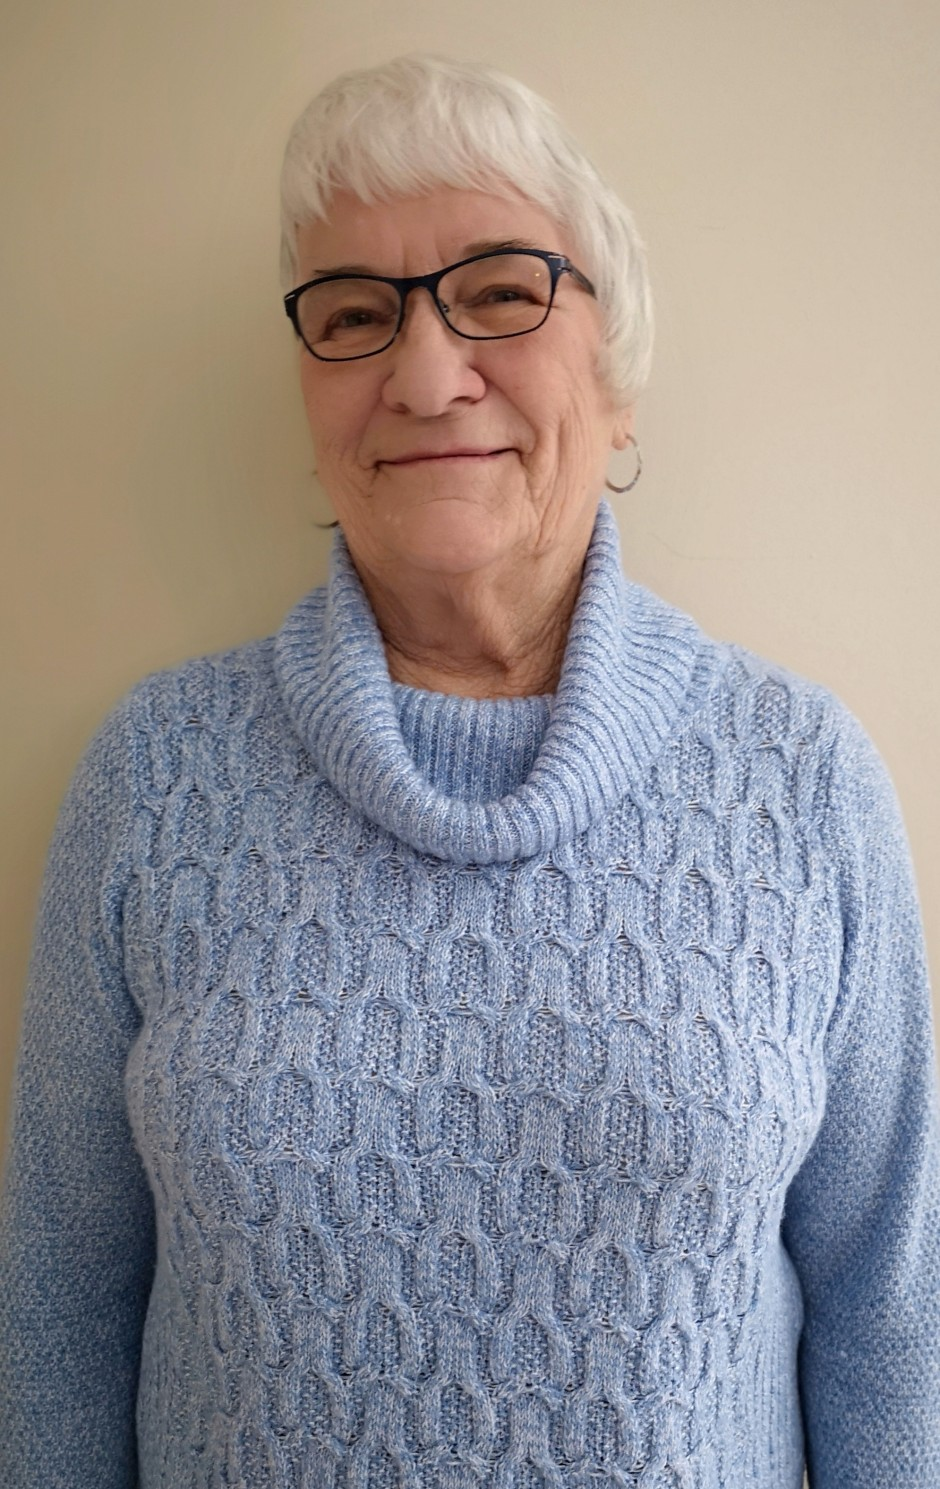 Elderly woman in light blue knit sweater wearing glasses, smiling